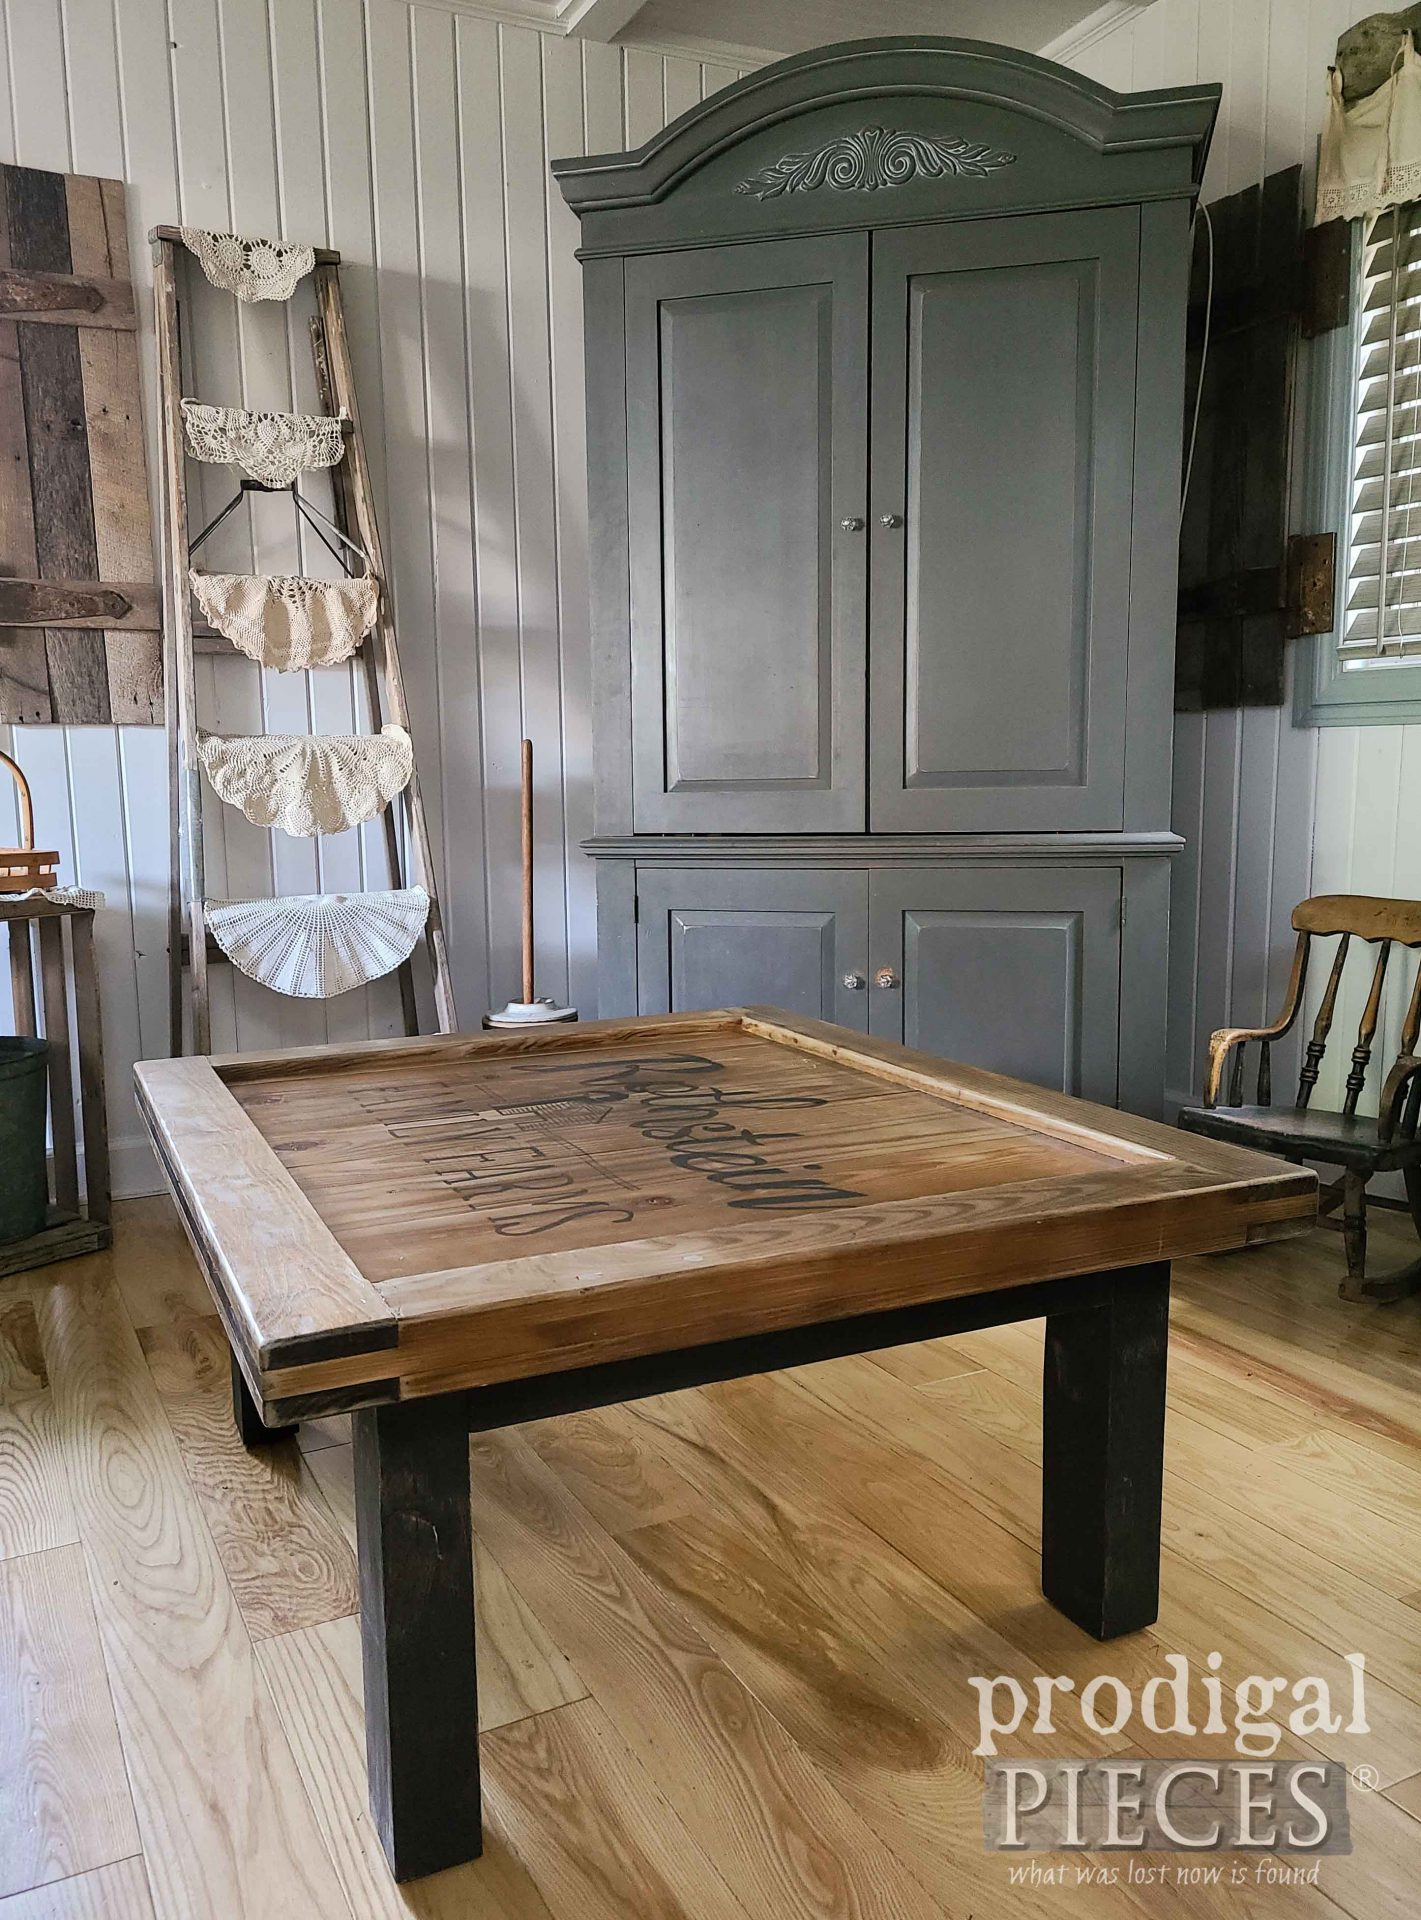 Farmhouse Living Room with Reclaimed Coffee Table by Larissa of Prodigal Pieces   prodigalpieces.com #prodigalpieces #livingroom #diy #woodworking #